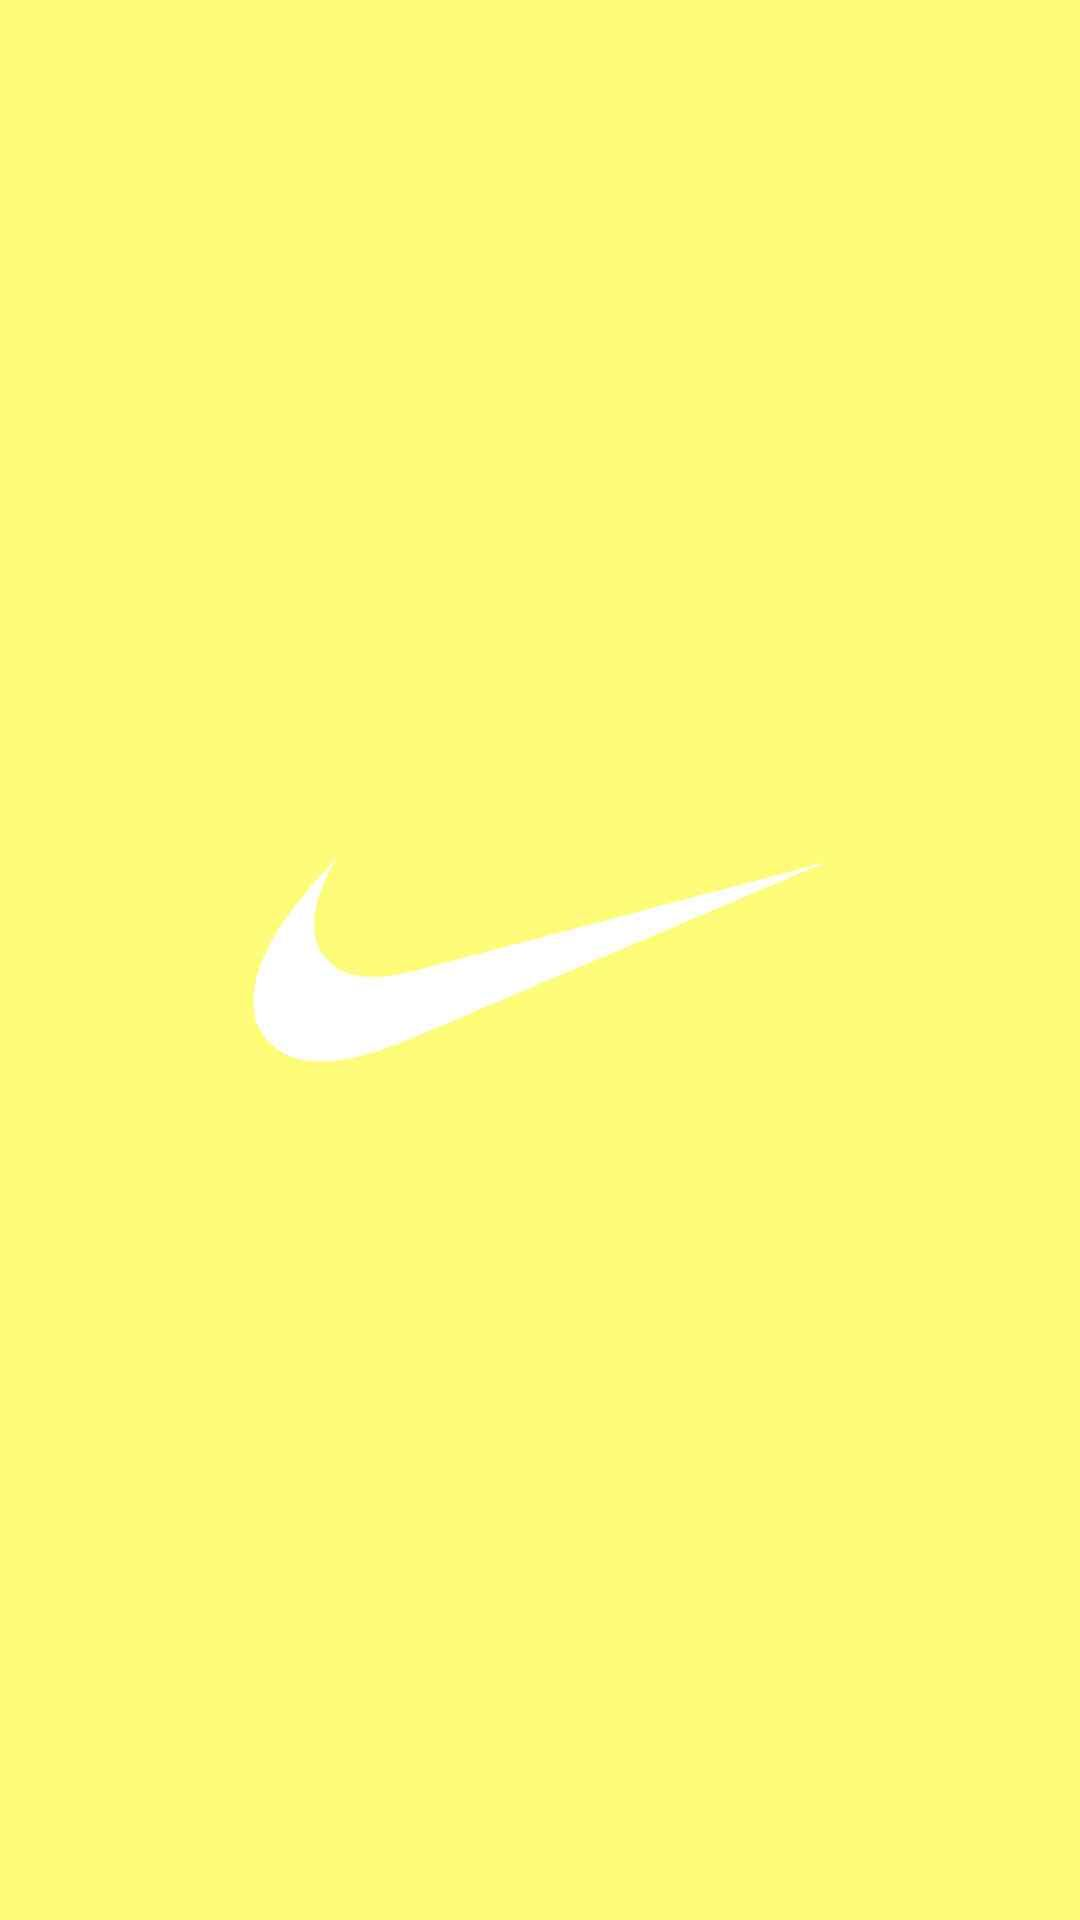 nike logo iphone wallpaper phone pinterest nike logo